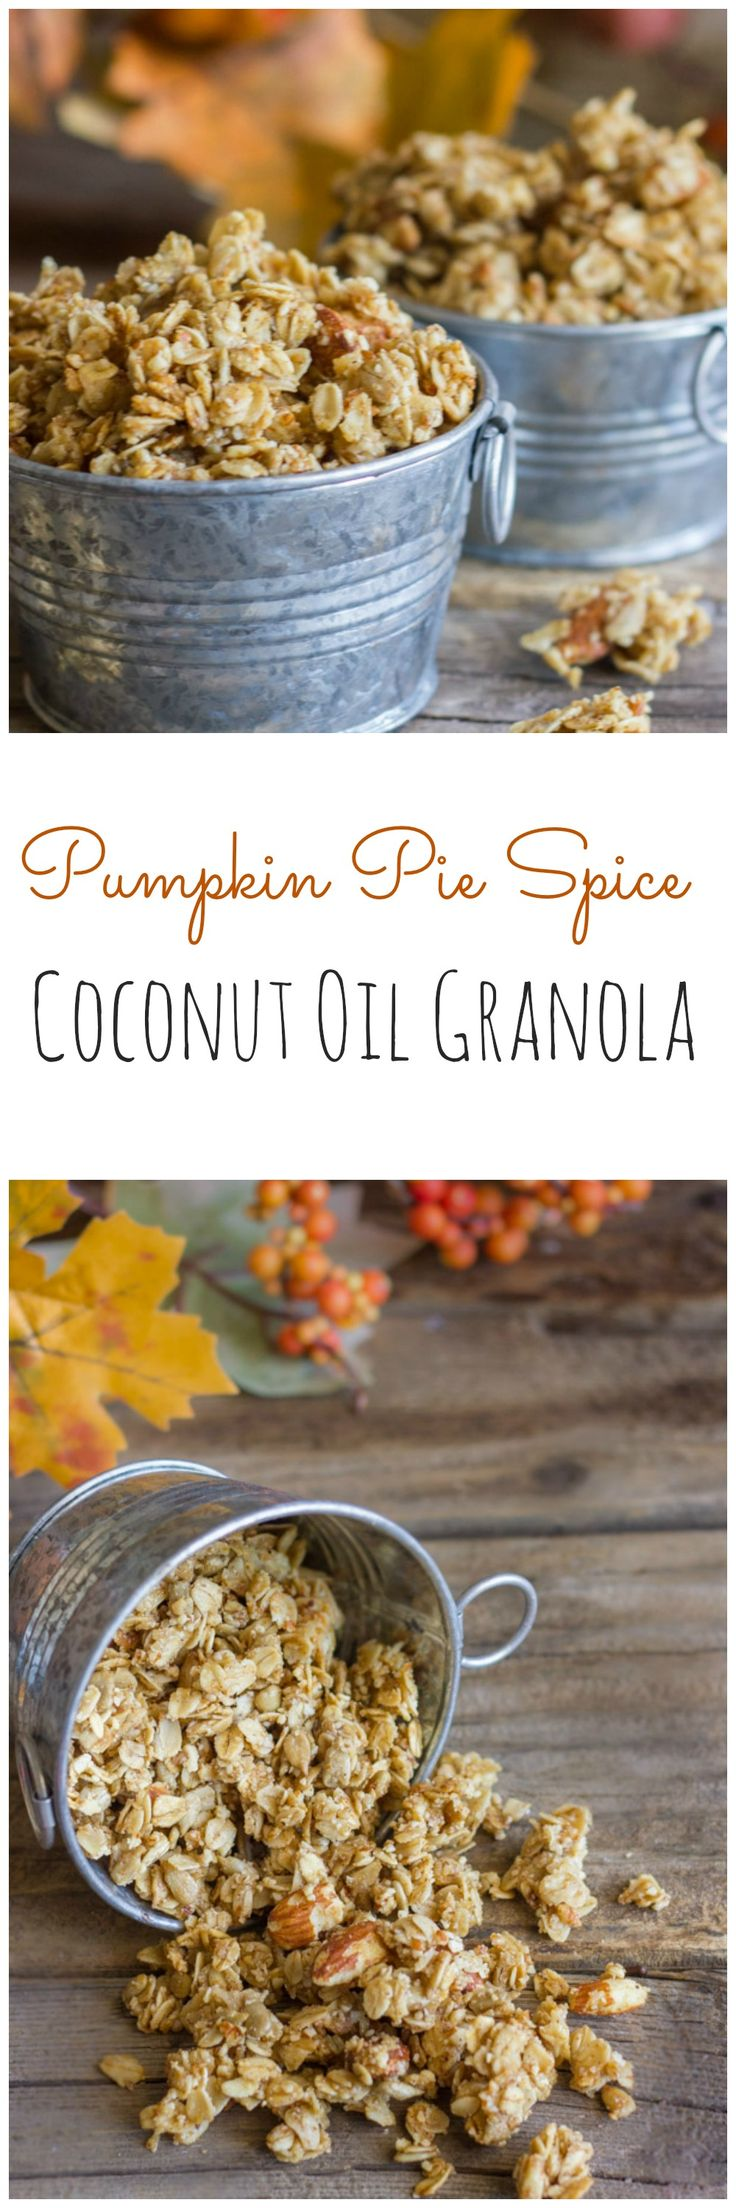 Pumpkin Pie Spice Granola made with coconut oil.